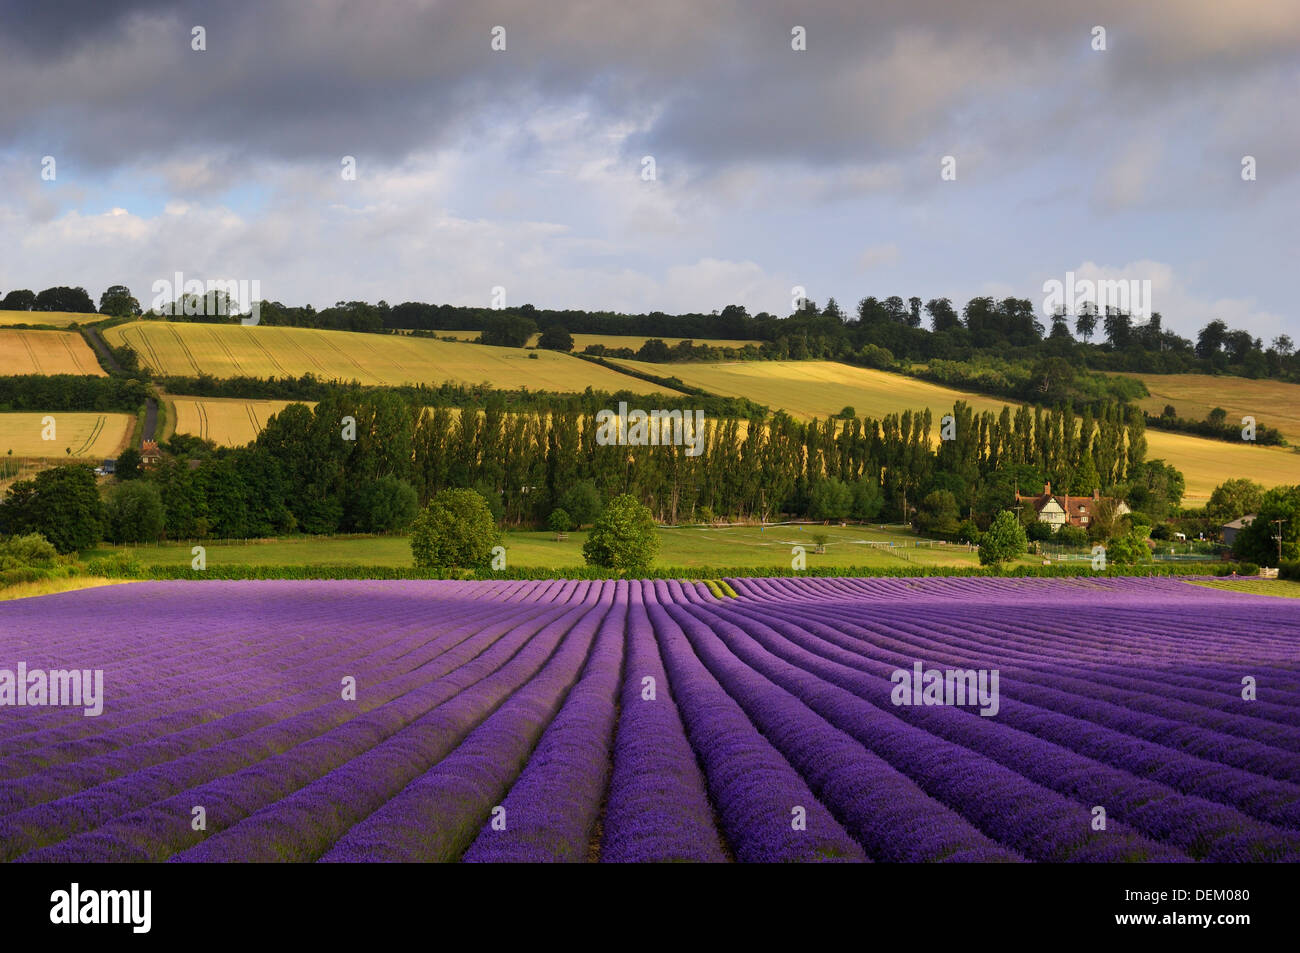 lavender field kent england uk flowers flora landscape beauty agriculture f crop ecologically friendly eco insect friendly - Stock Image